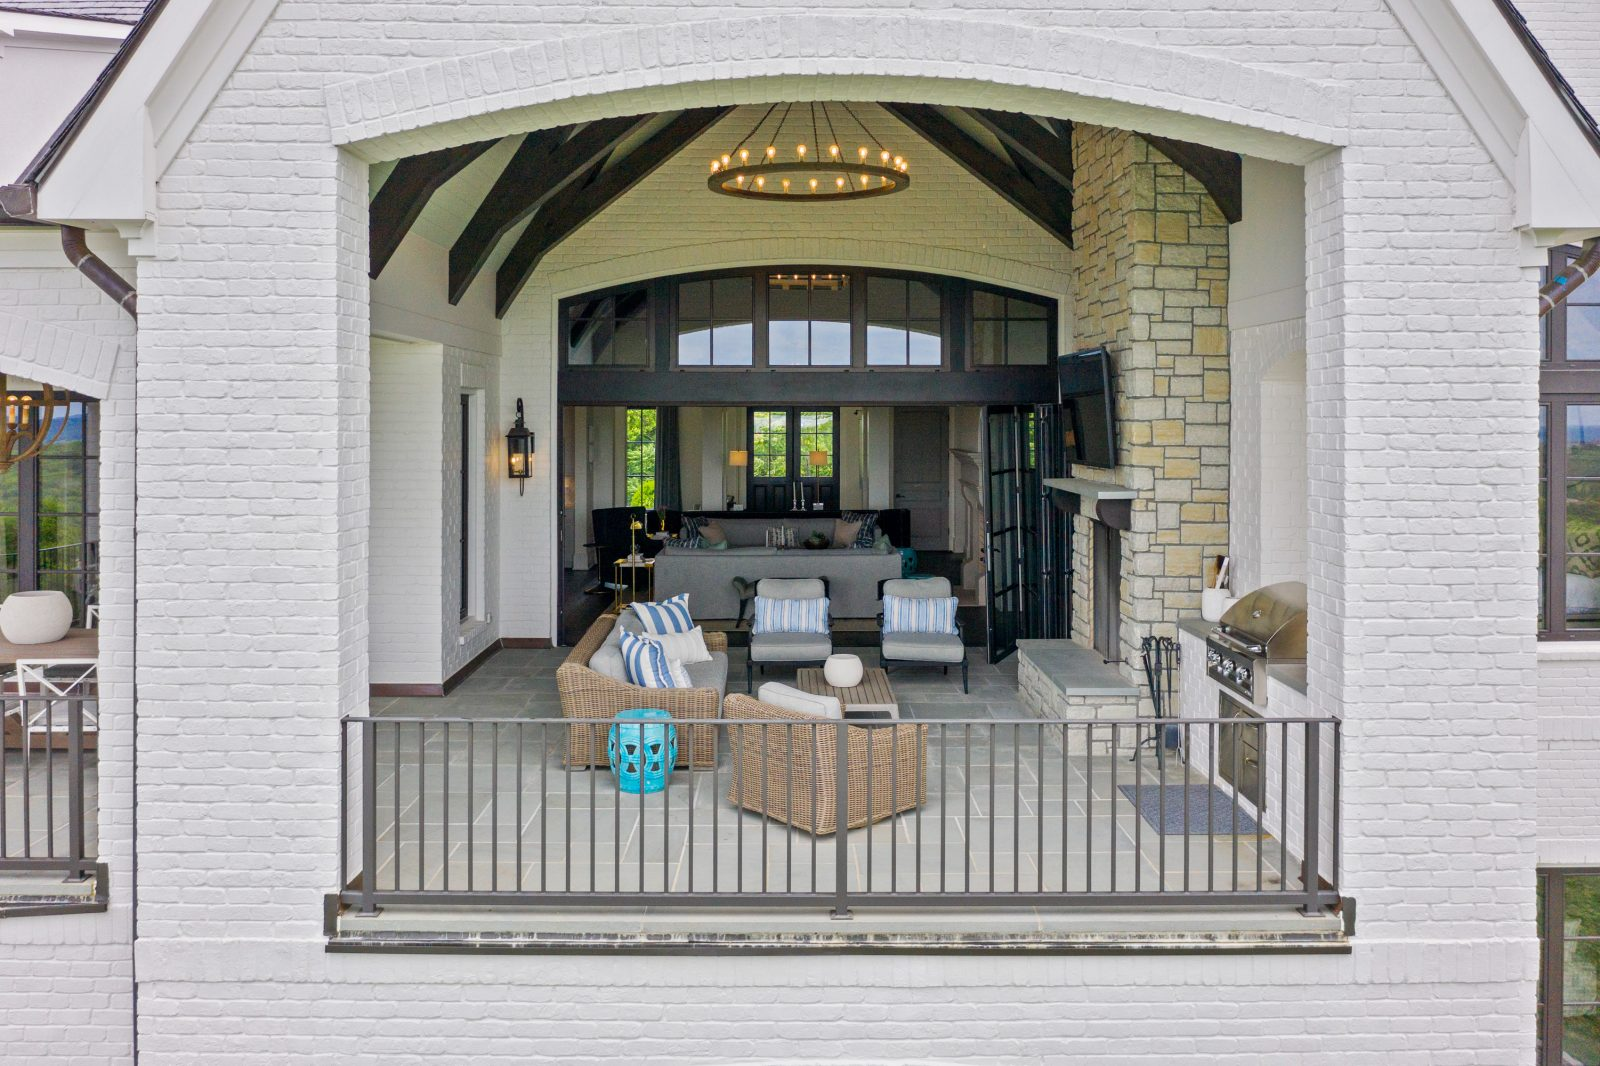 Family lounge area with gates for toddlers and comfortable outdoor furniture